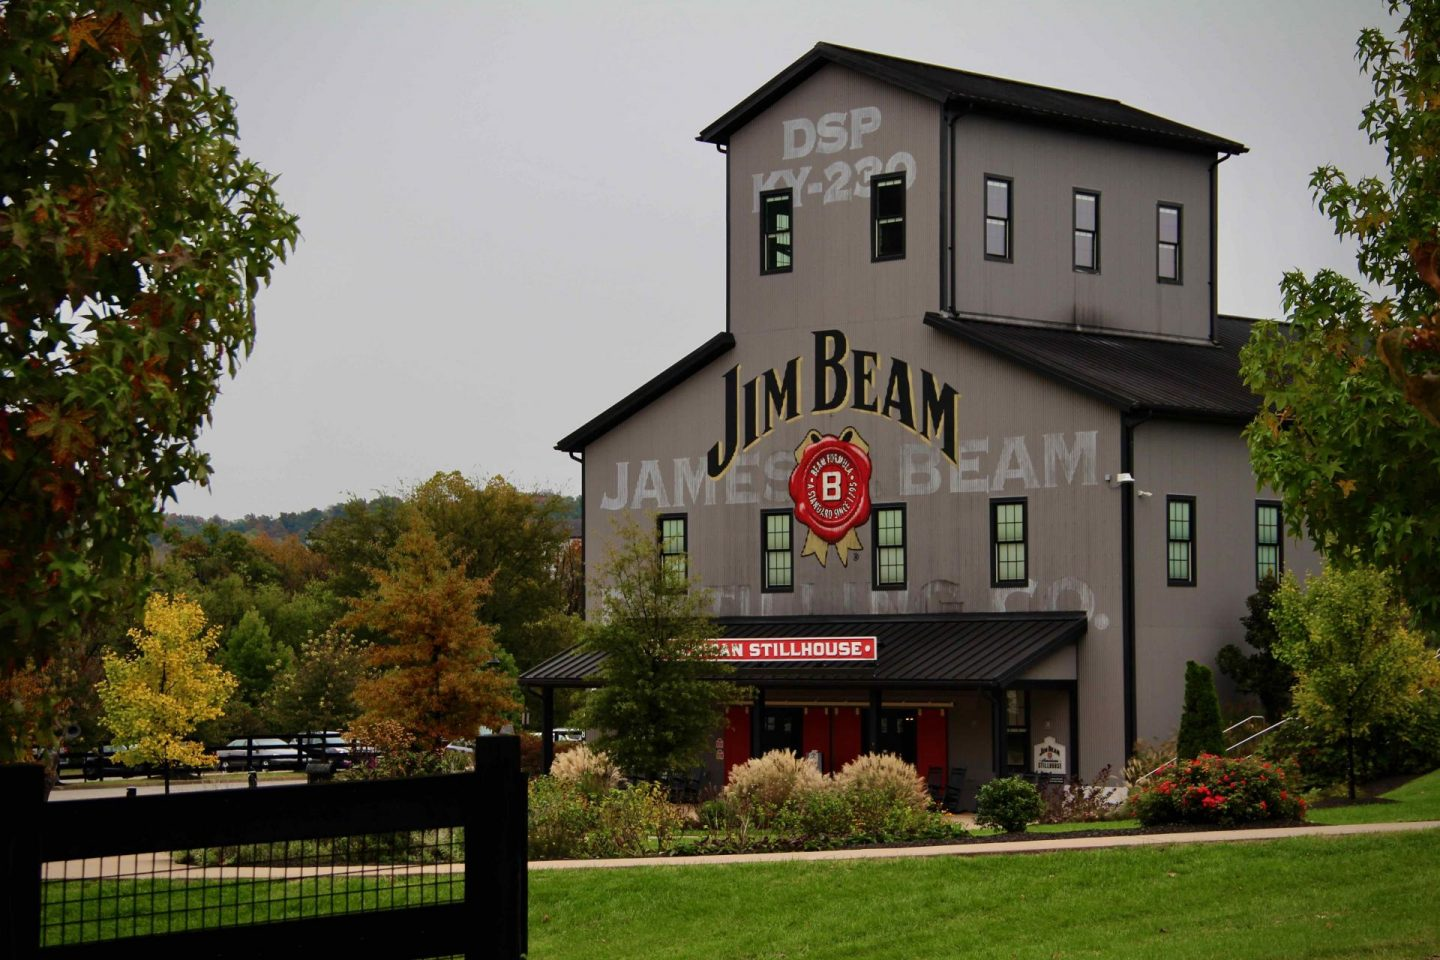 Jim Beam Bourbon Trail | Bucket List Adventure | The Spectacular Adventurer